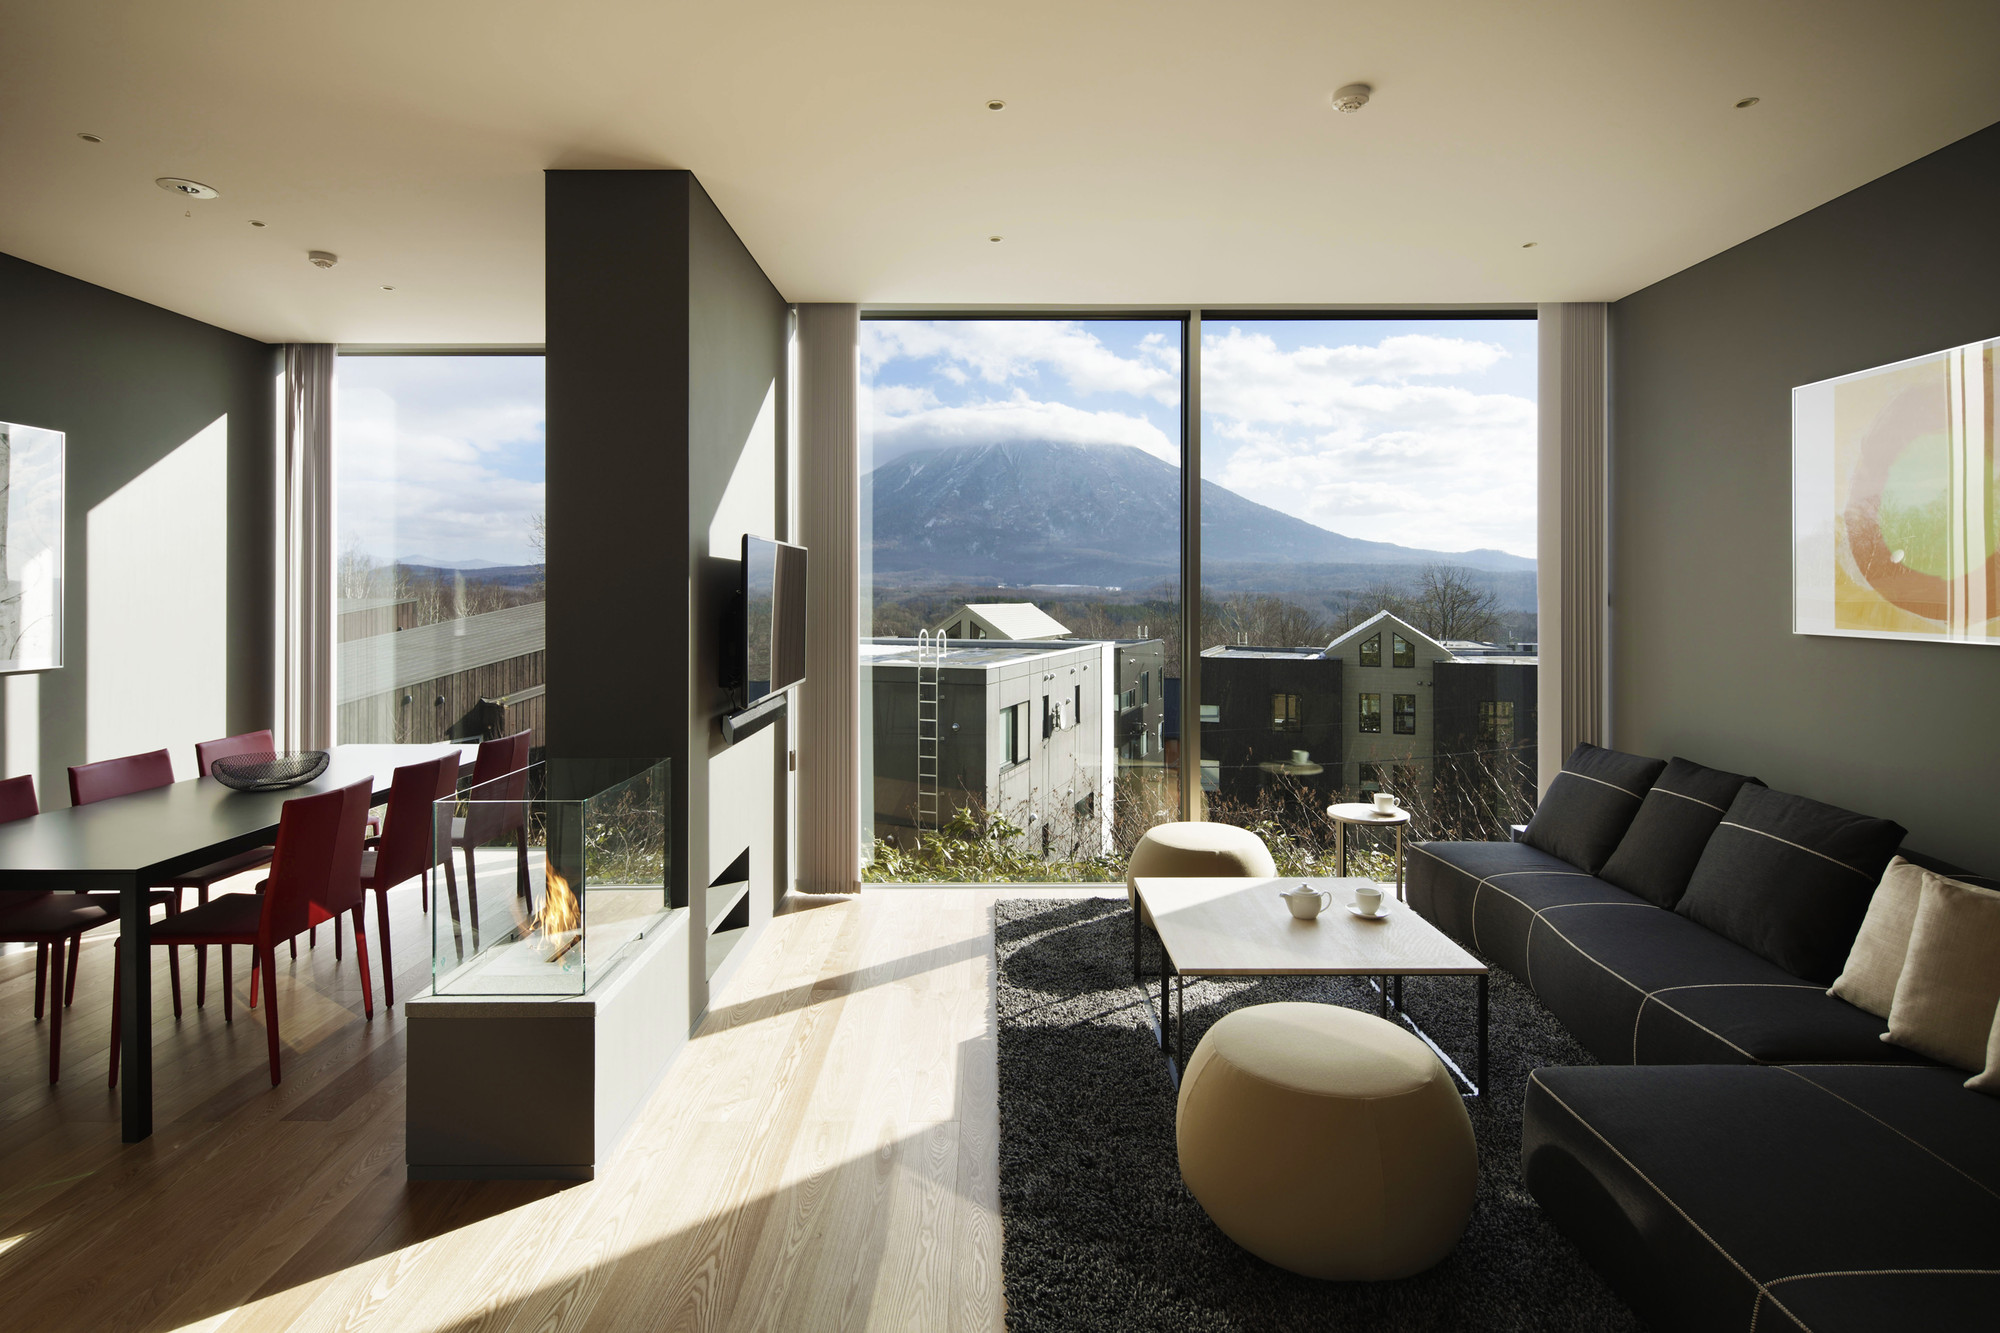 Terrazze / AE5 partners | ArchDaily